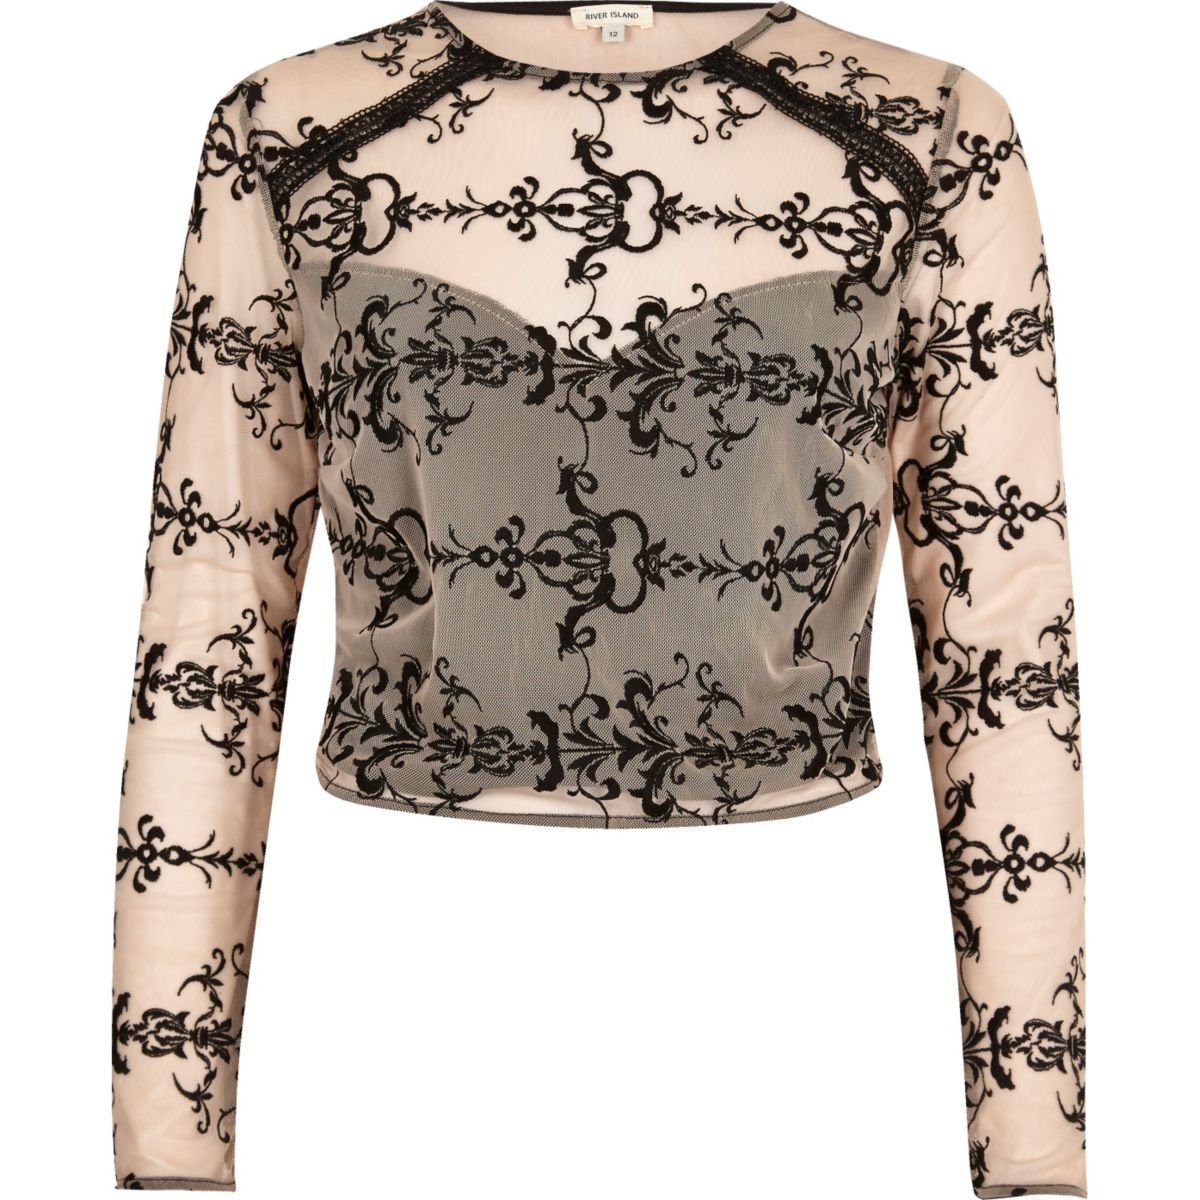 Nude embroidered mesh crop top